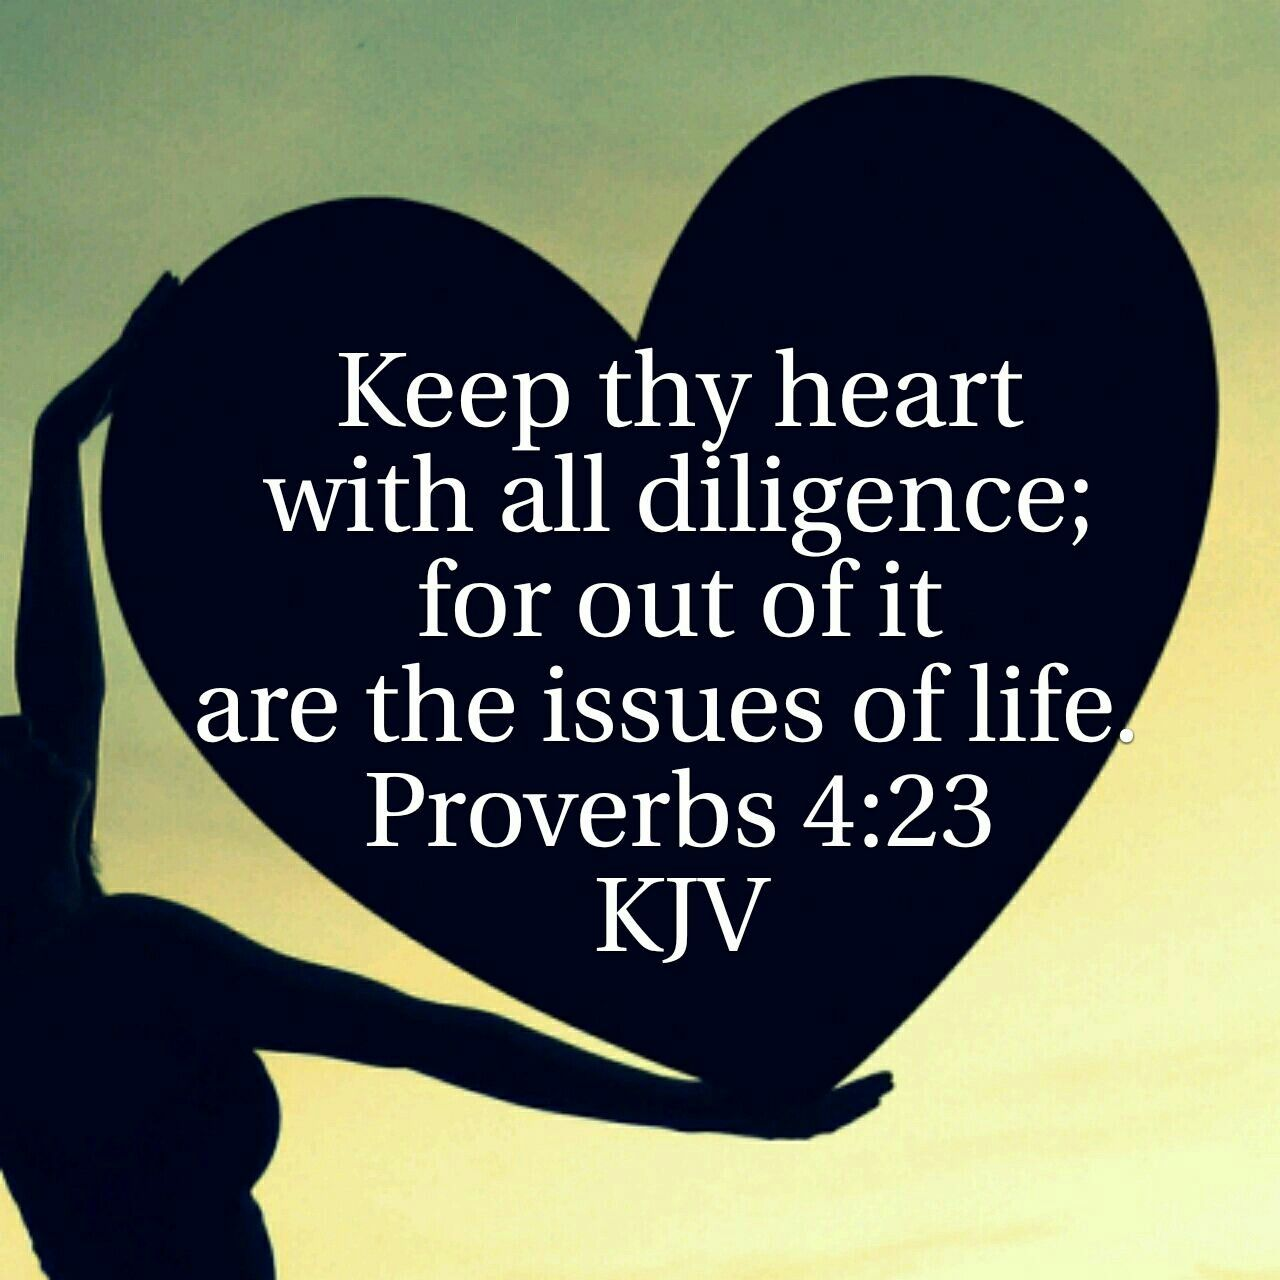 Proverbs 4 : 23 KJV | Hearts + Bible Verses | Bible quotes